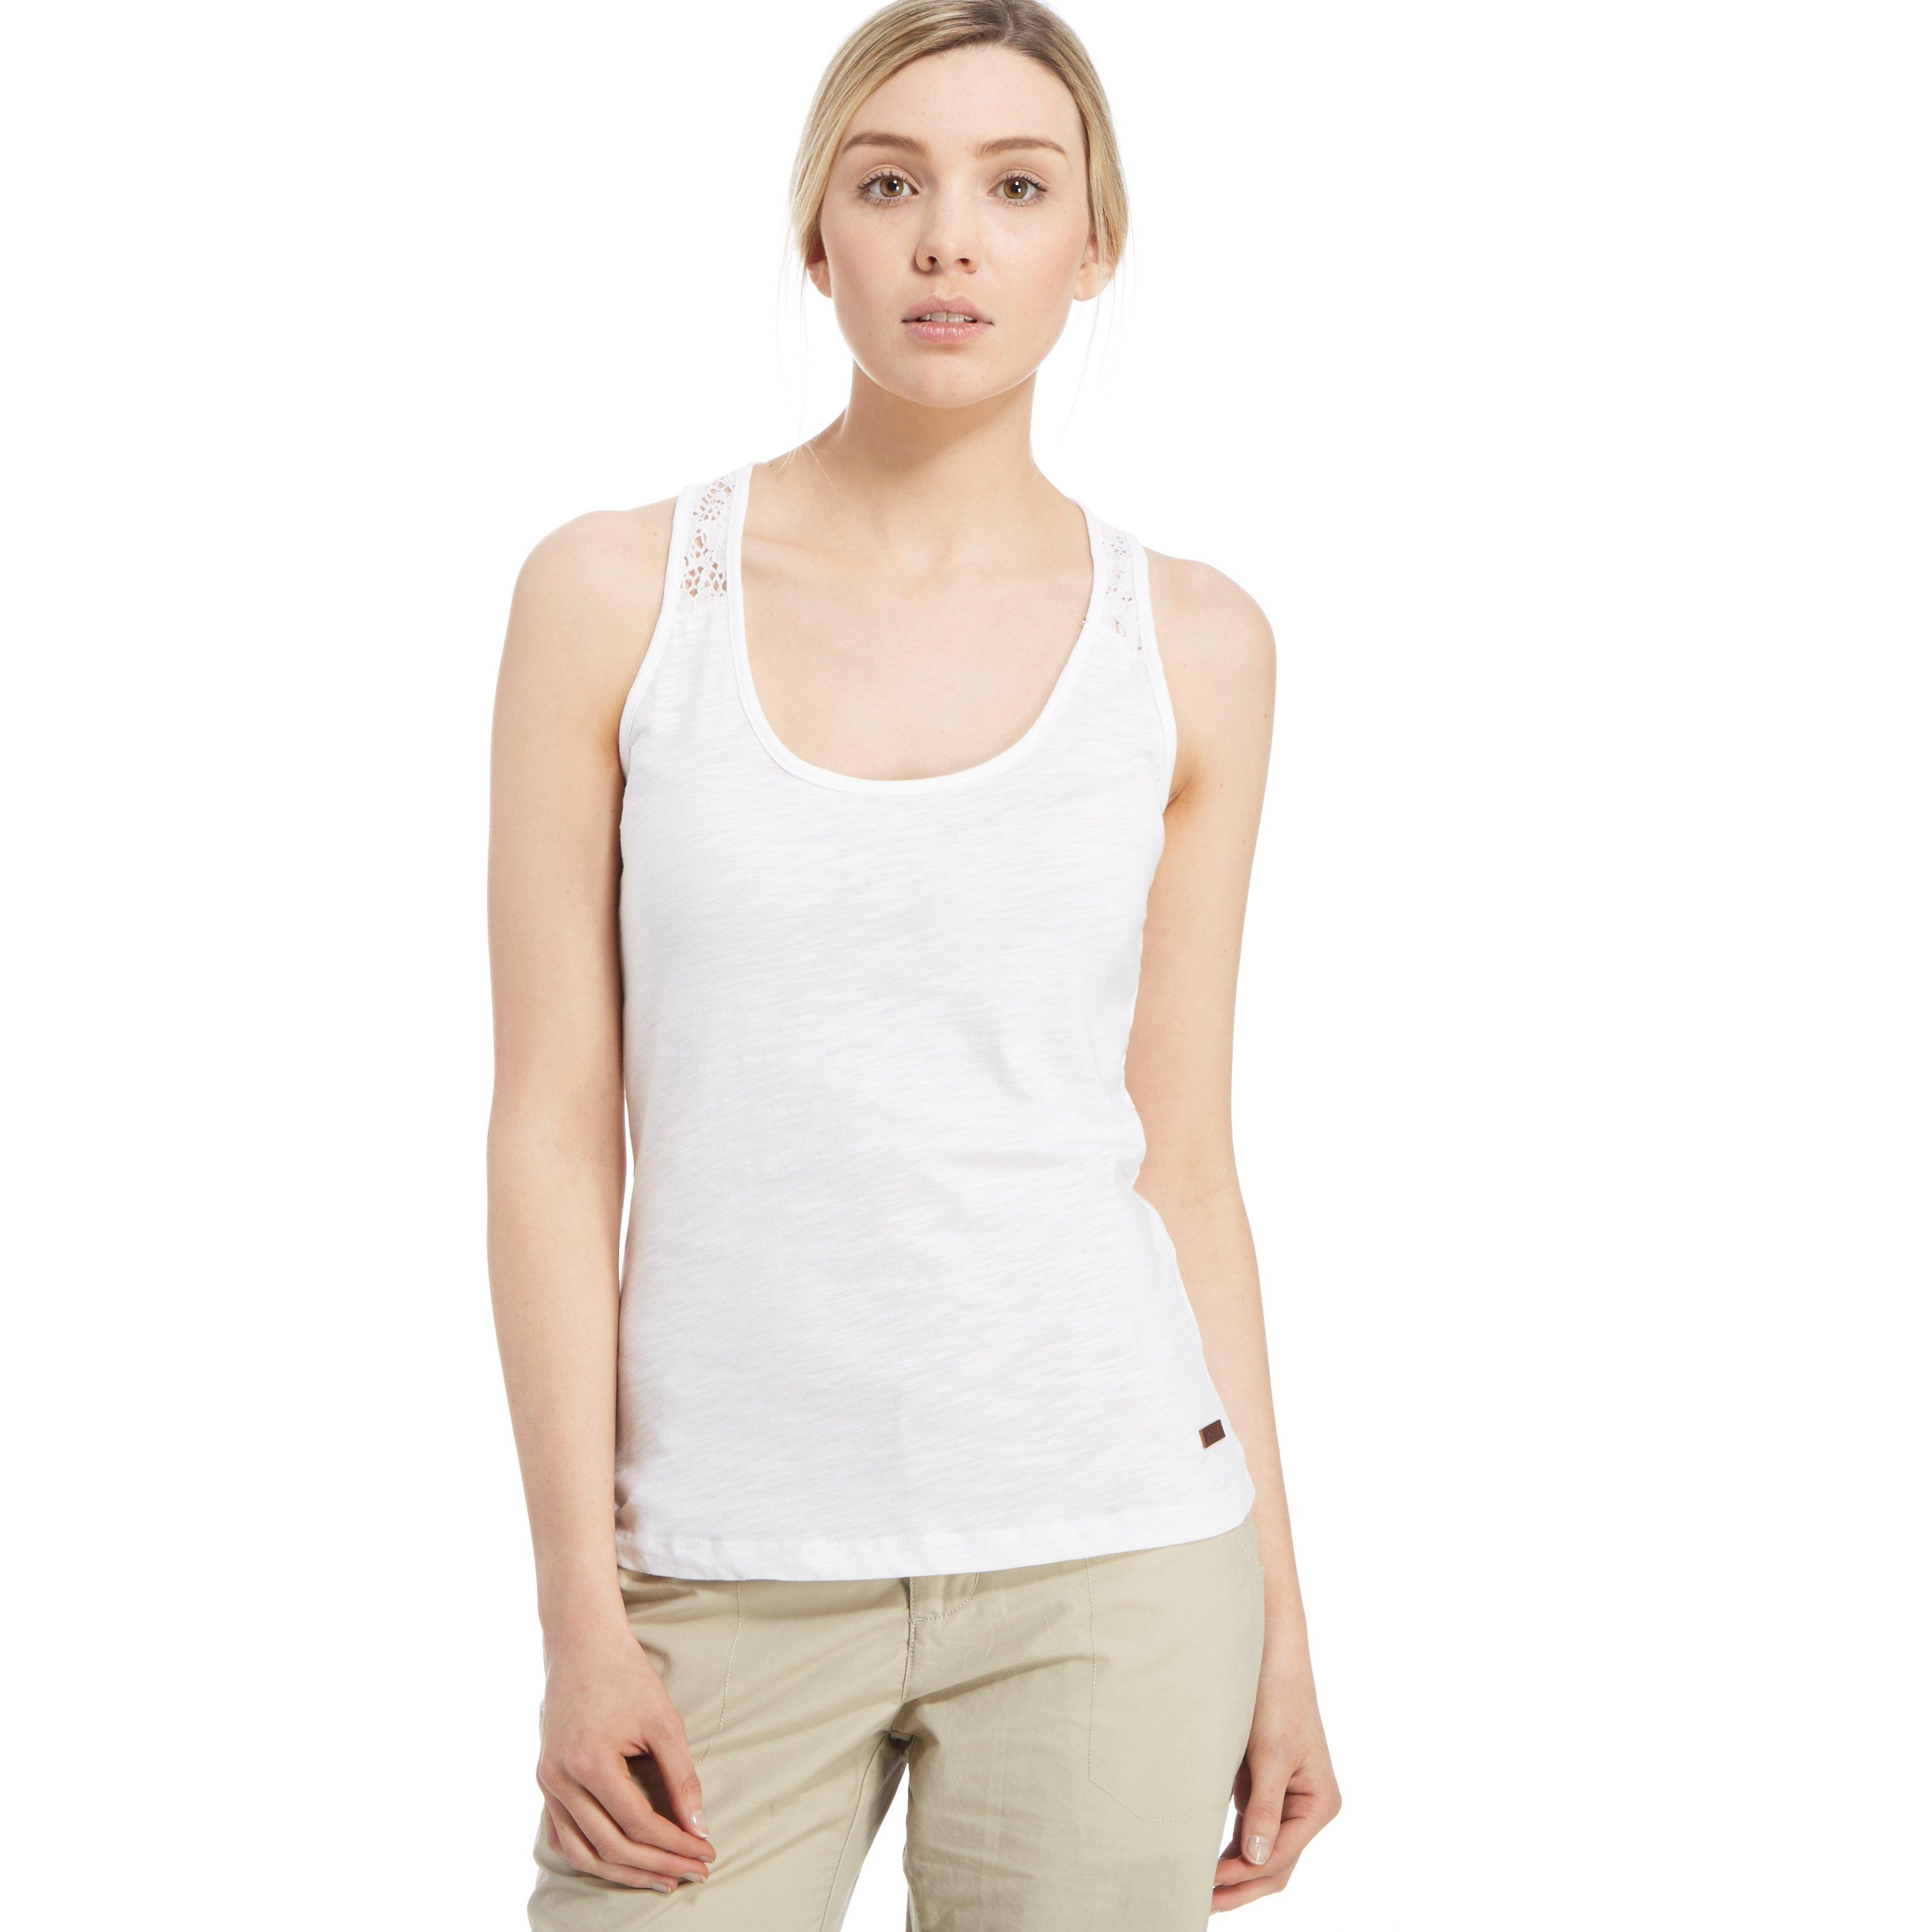 Protest Women's Beccles 16 Tank Top, White